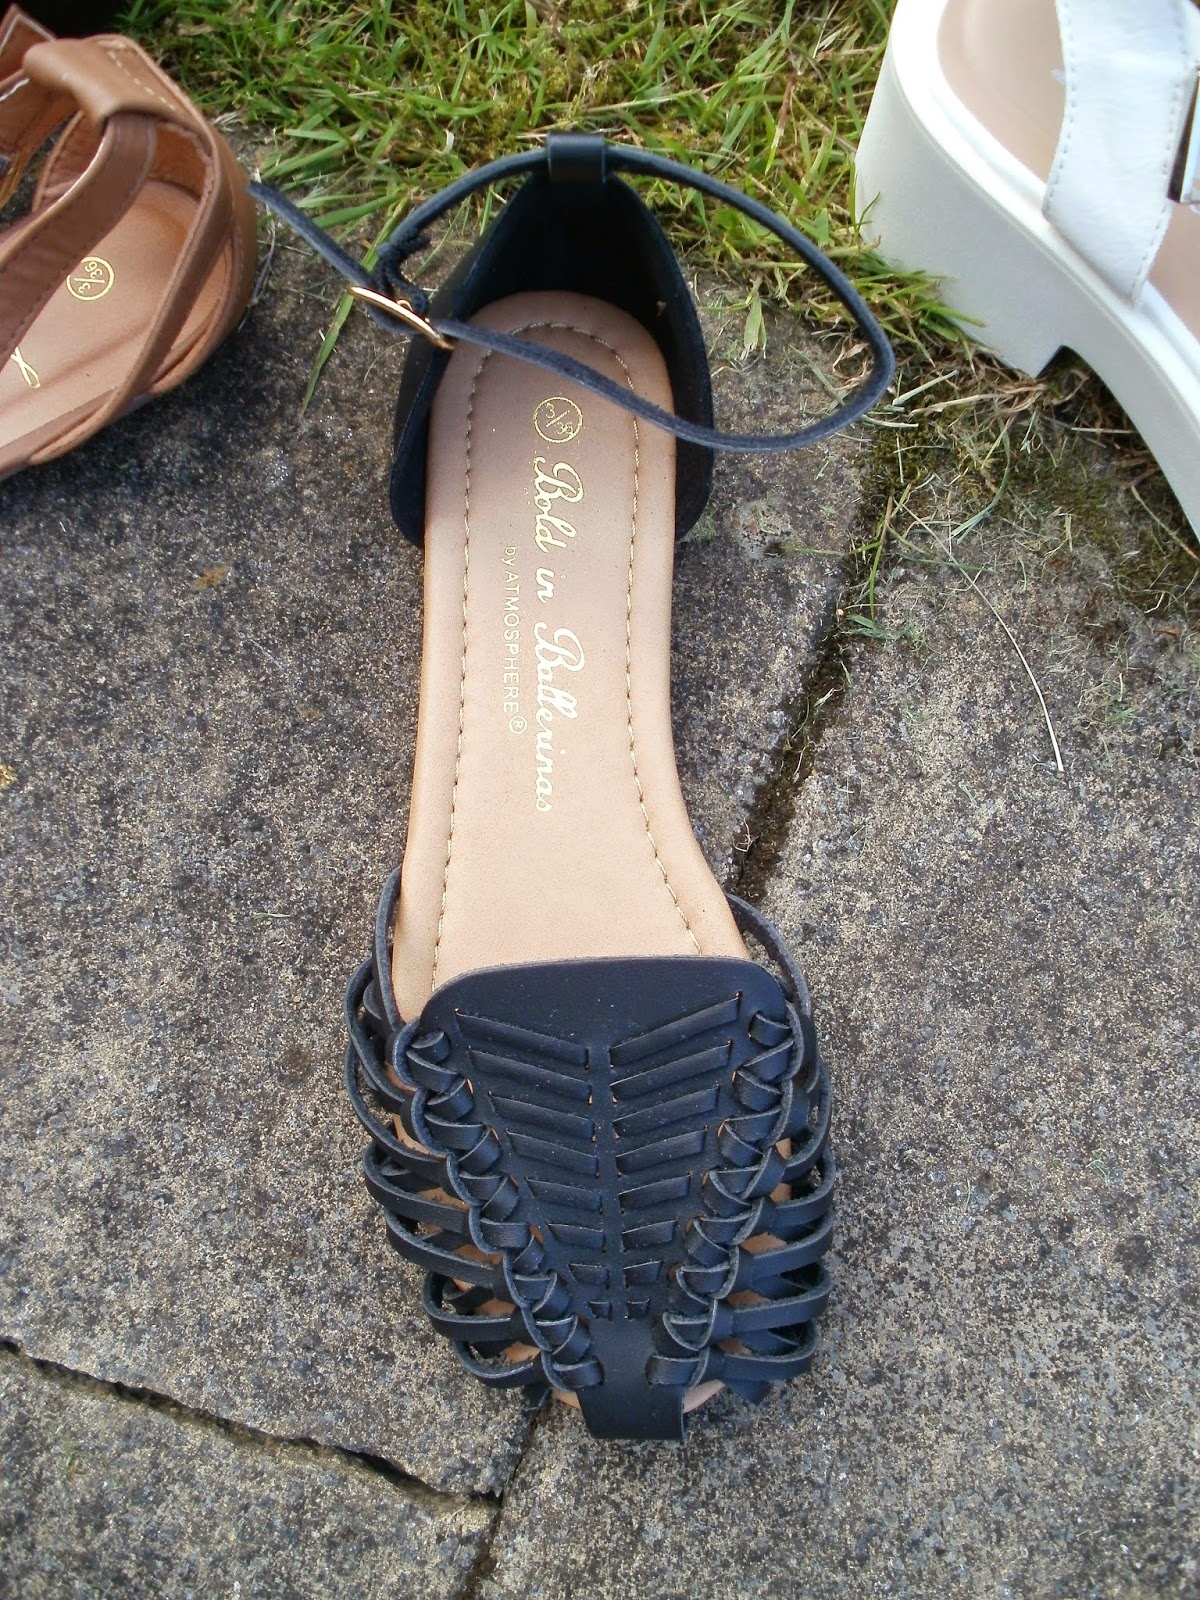 62c1ddf11d0e6 Next up I m bundling all of the flat ankle strap sandals in together.  They re all really cute